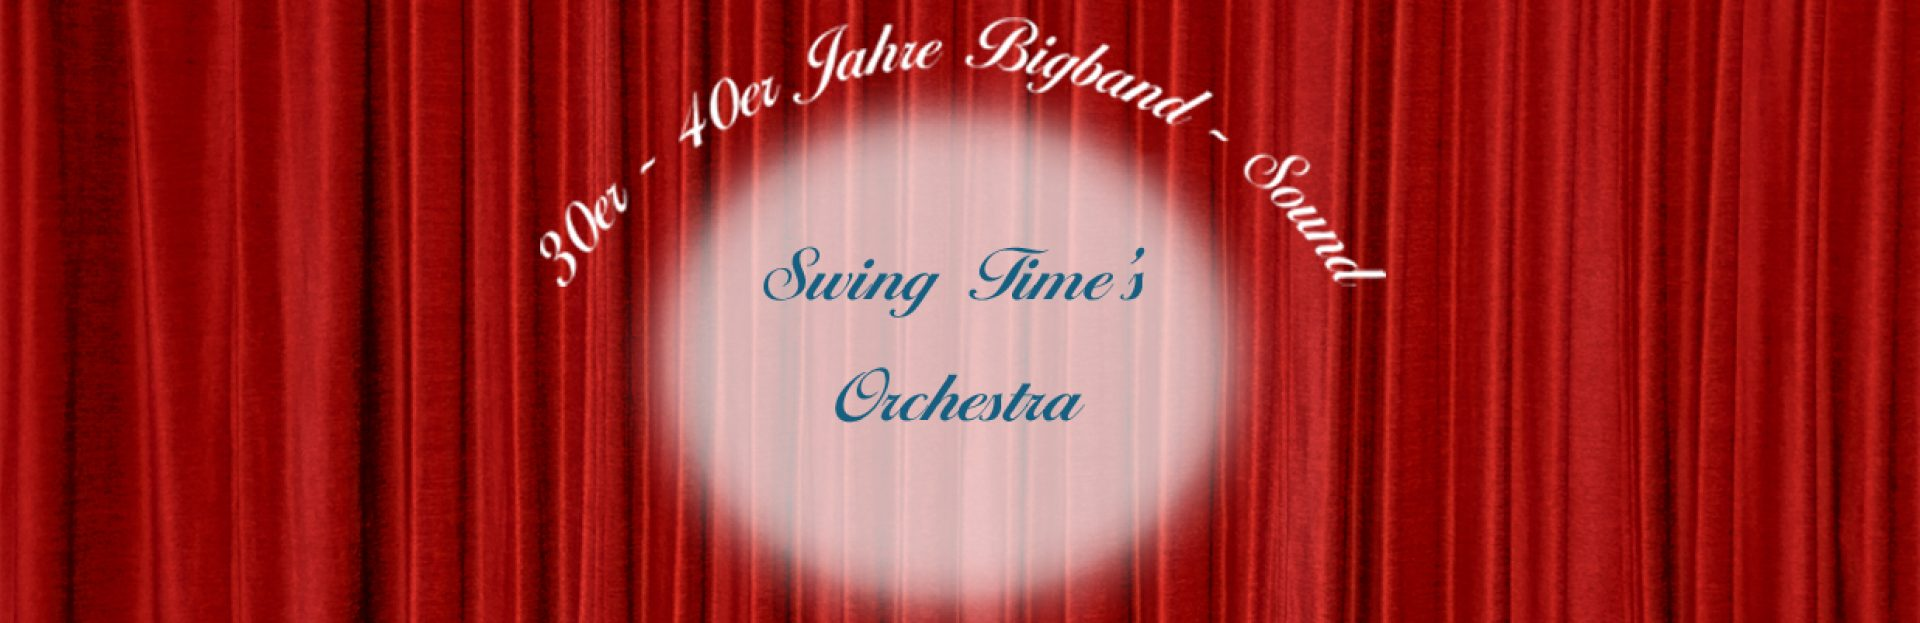 Swing Time's Orchestra